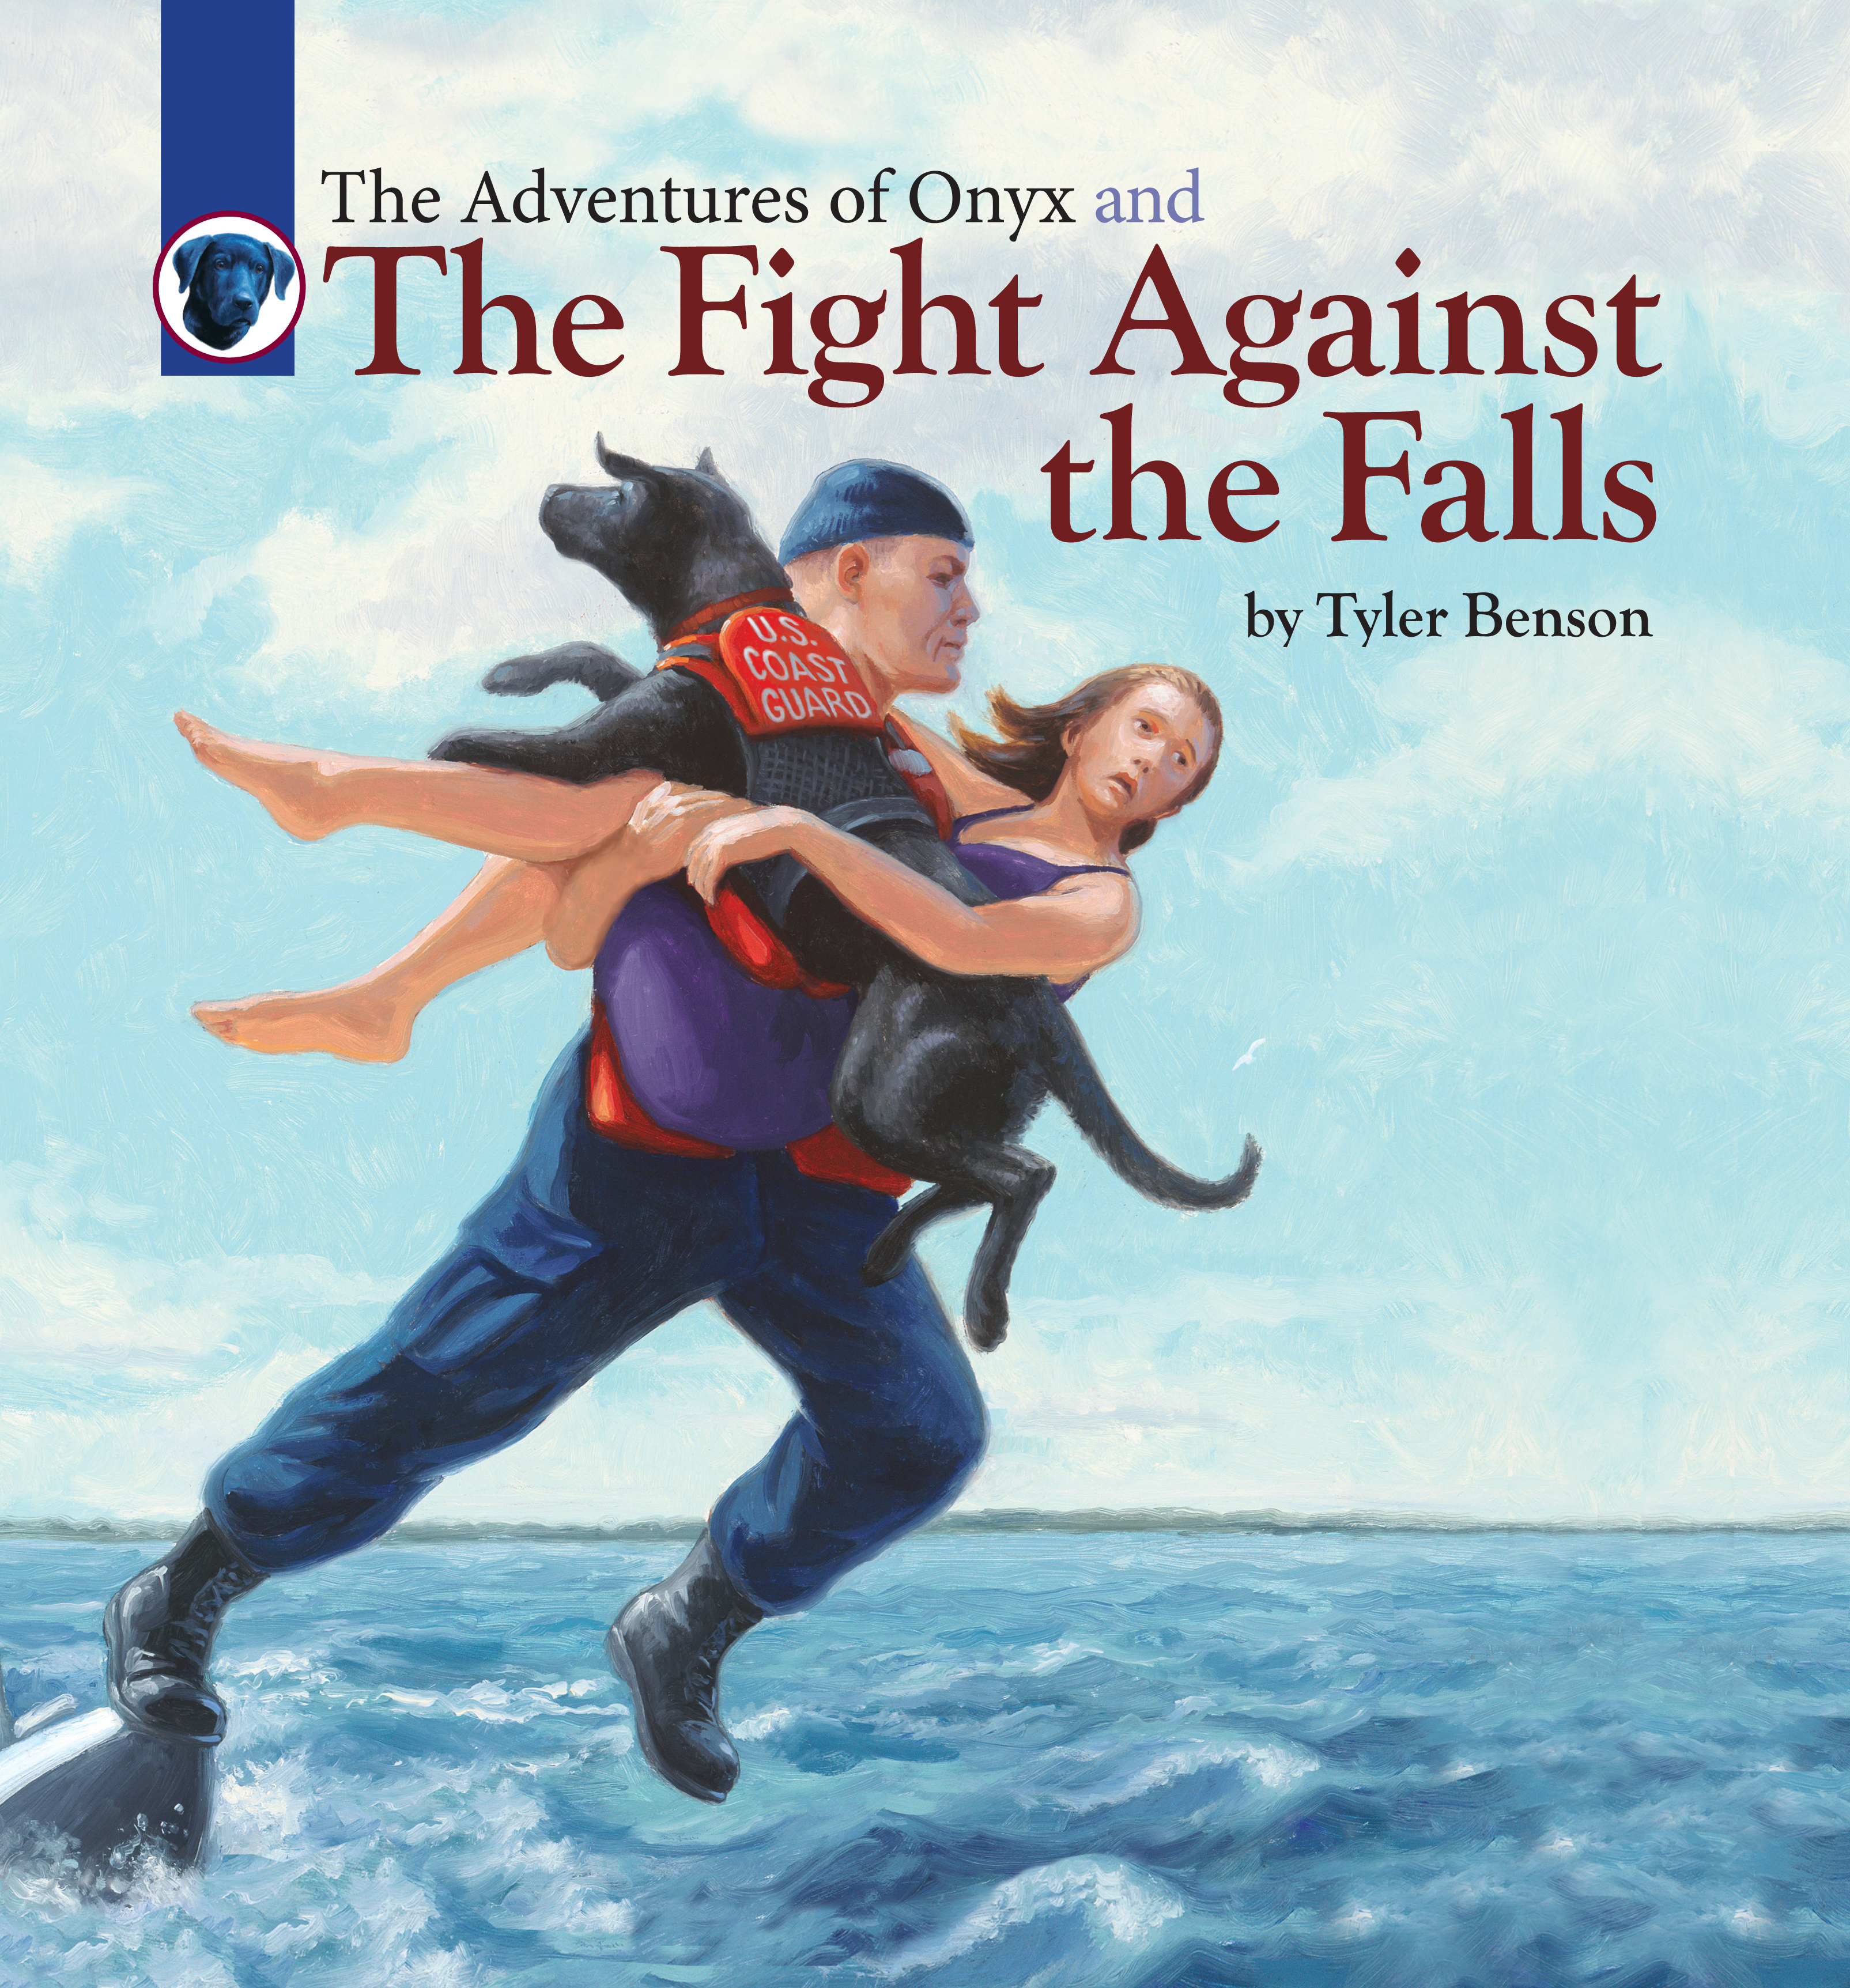 The Adventures of Onyx and The Fight Against the Falls